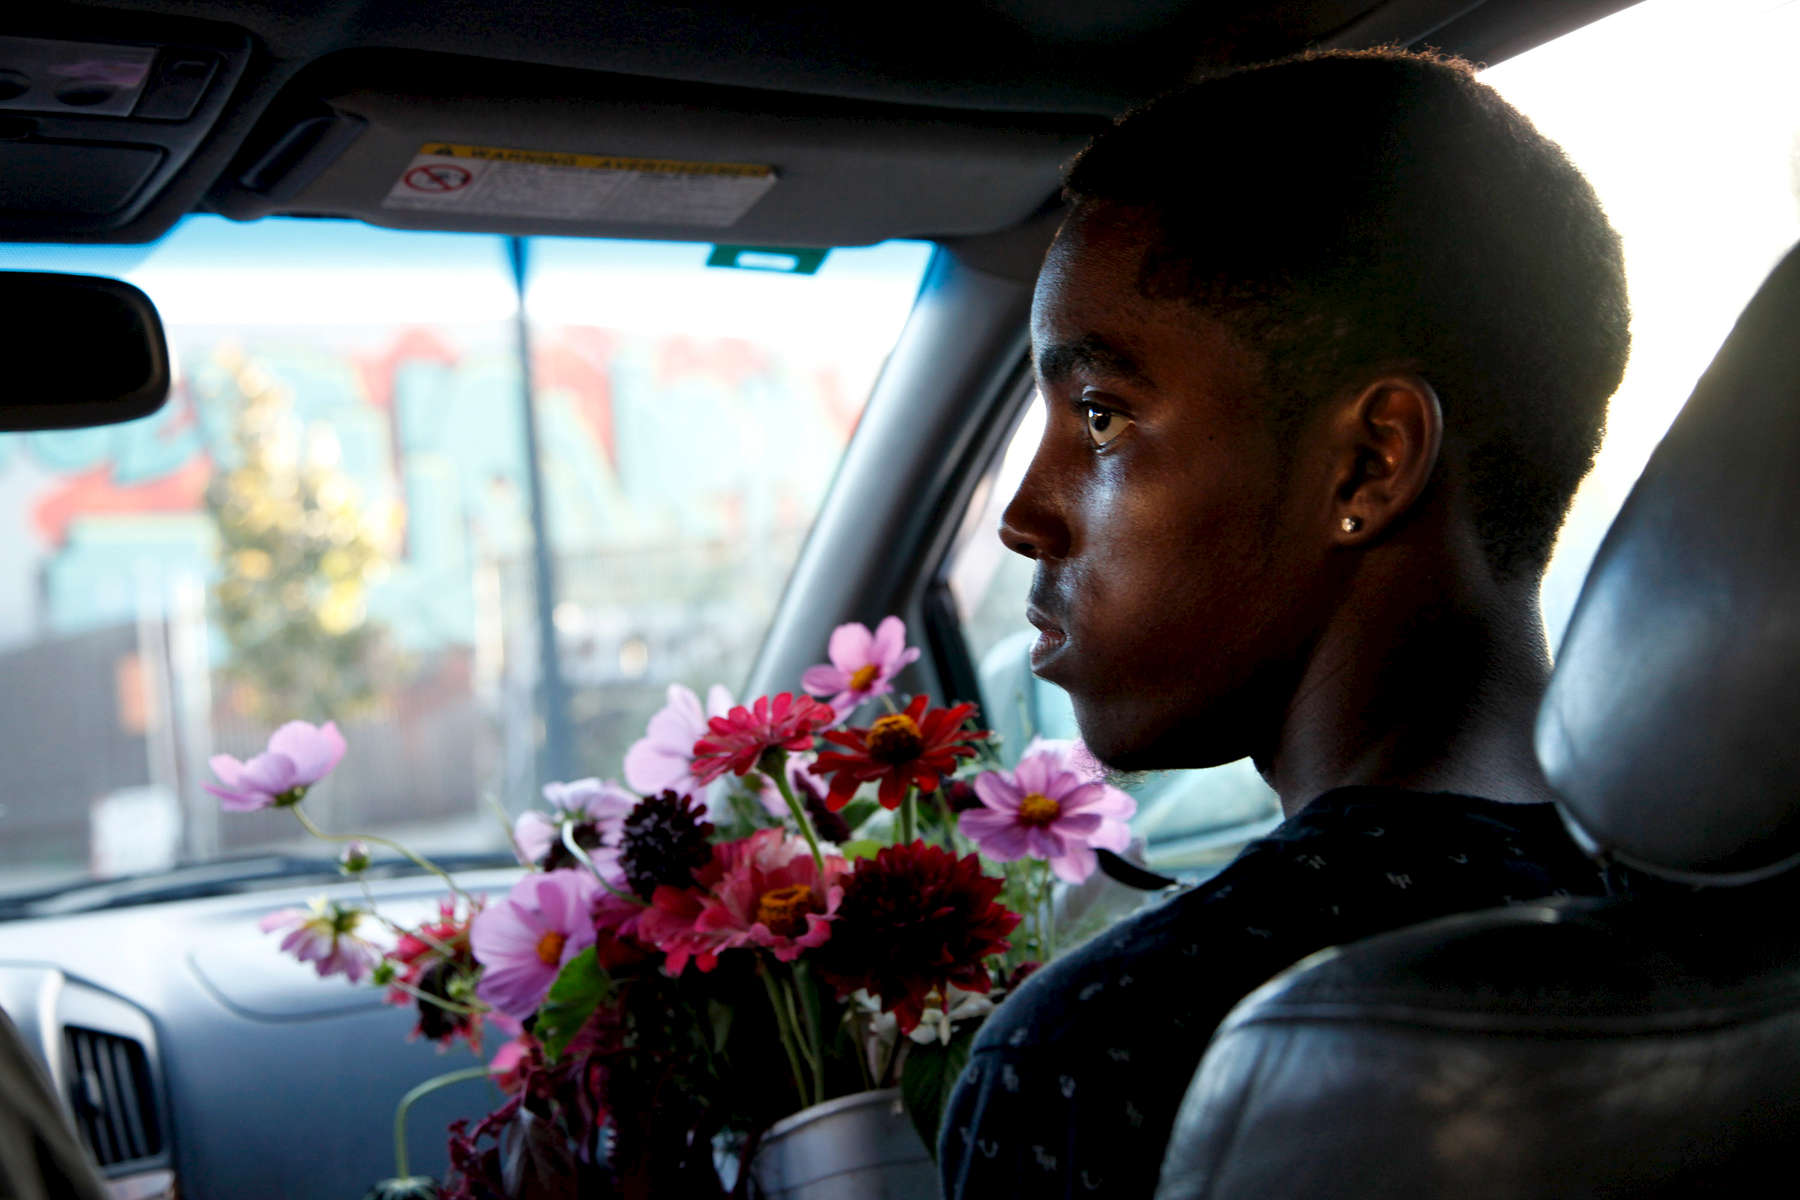 "Mekhi Brown, 15, holds flowers to be delivered to a local restaurant. Farm manager Jon Price ran a farm in Sacramento before moving back to the Bay Area to work with the interns at WOW. ""There's so much value. It's really therapeutic caring for living things."" (Photo by Preston Gannaway © 2016)"